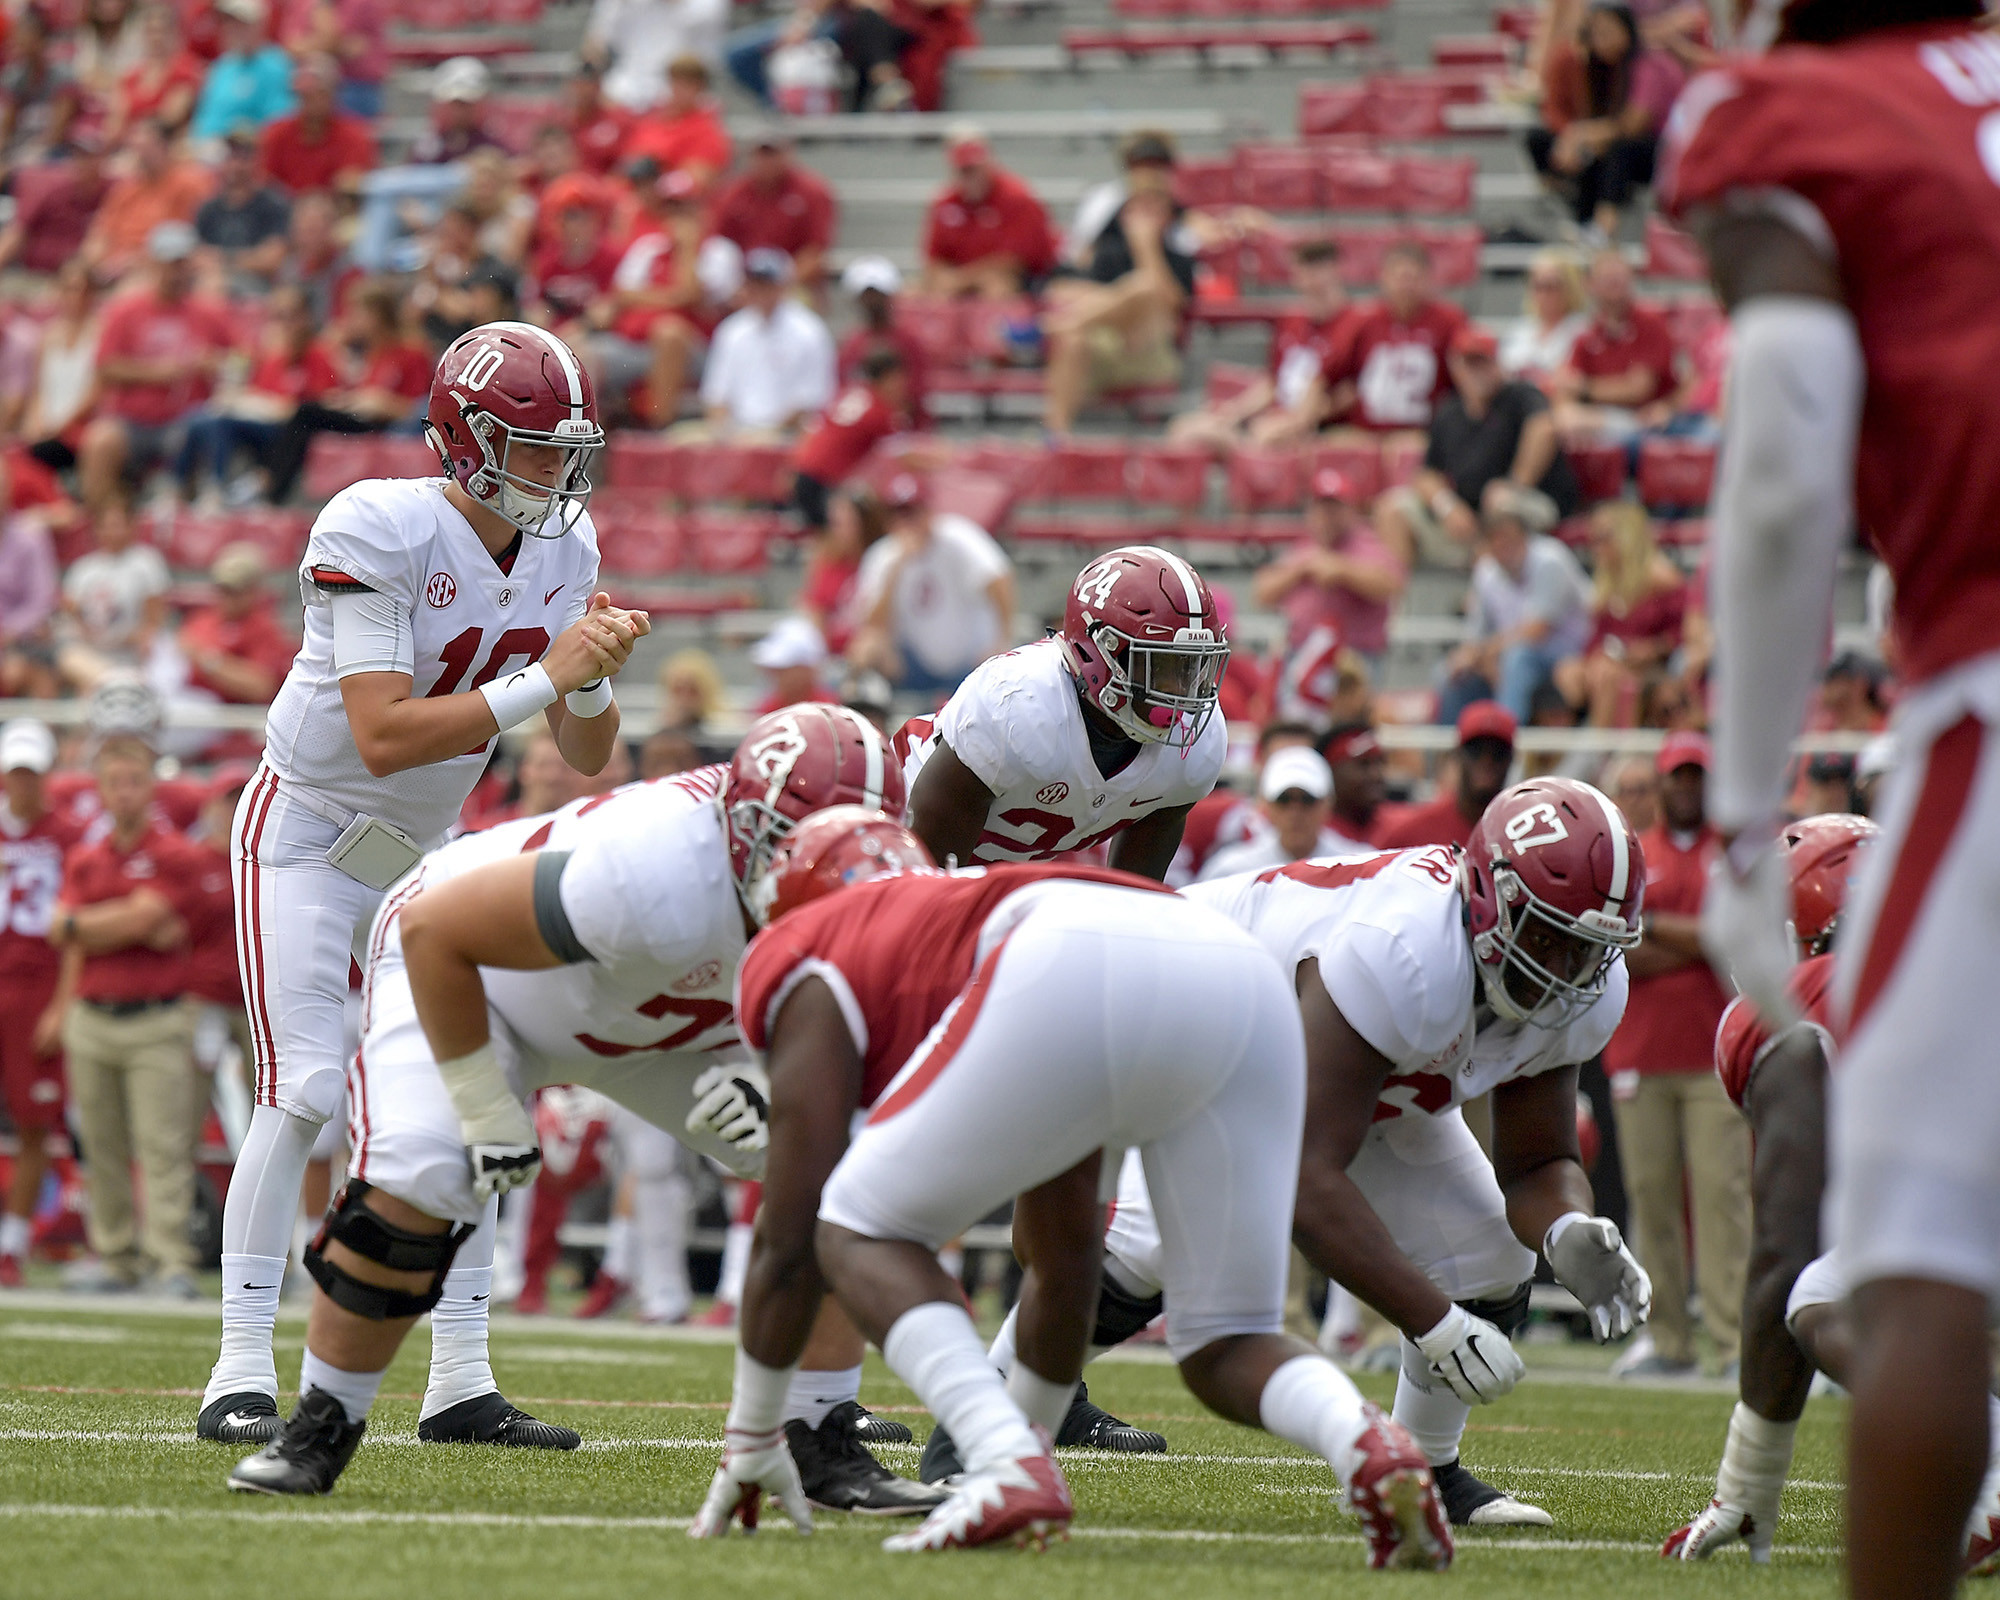 Alabama Crimson Tide quarterback Mac Jones (10) prepares to take the snap in the fourth quarter of the NCAA football game at Razorback Stadium on Oct. 6, 2018, in Fayetteville, Ark. Alabama defeated Arkansas 65-31. (Photo by Lee Walls)